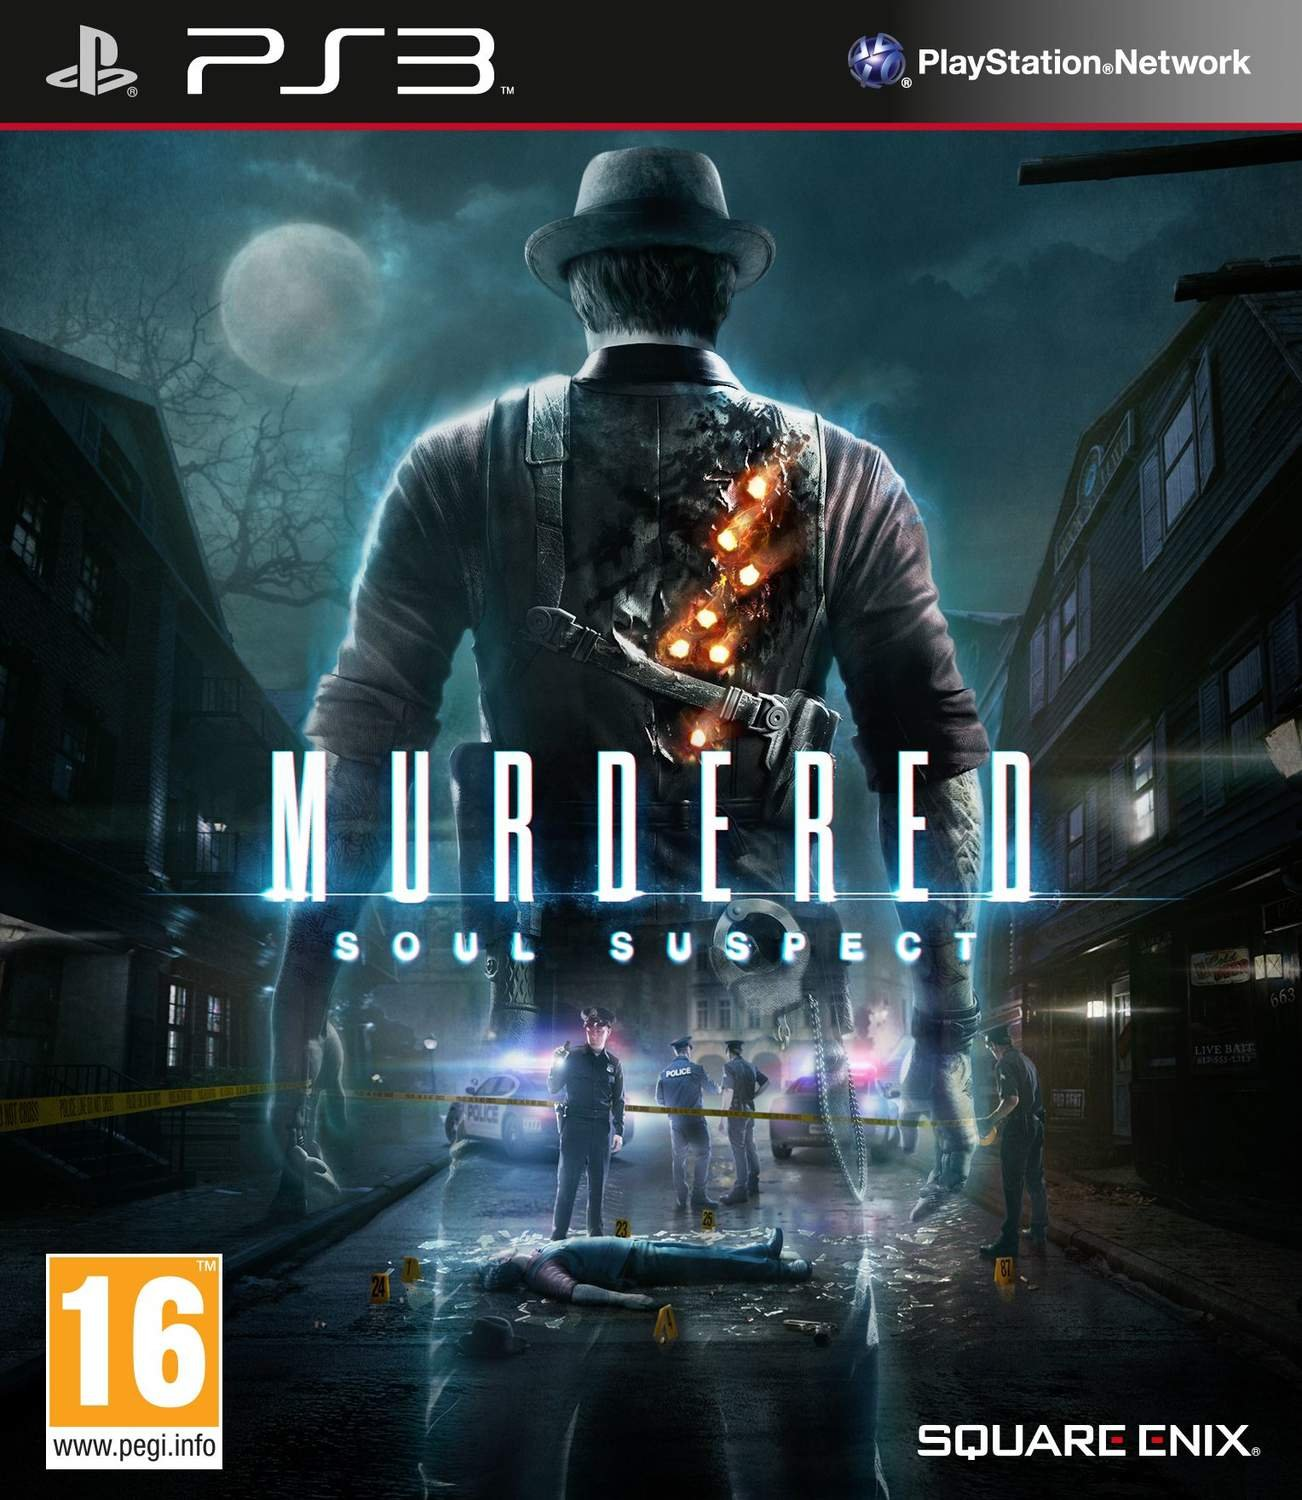 Murdered: Soul Suspect - Playstation 3